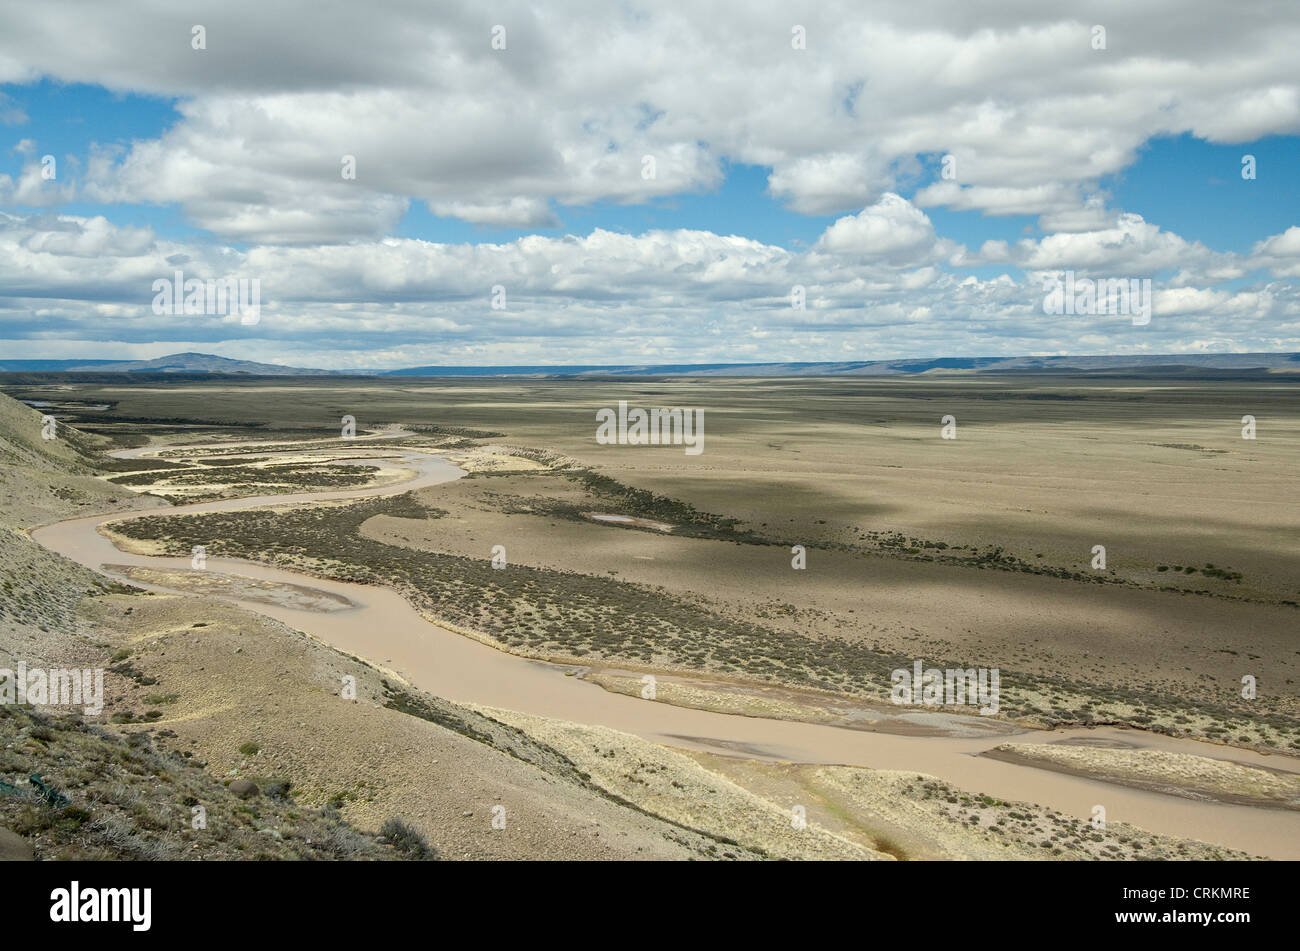 Belgrano River valley 49° 06'50 S 71°27'25 W view from Estancia Sierra Andia Santa Cruz Province - Stock Image